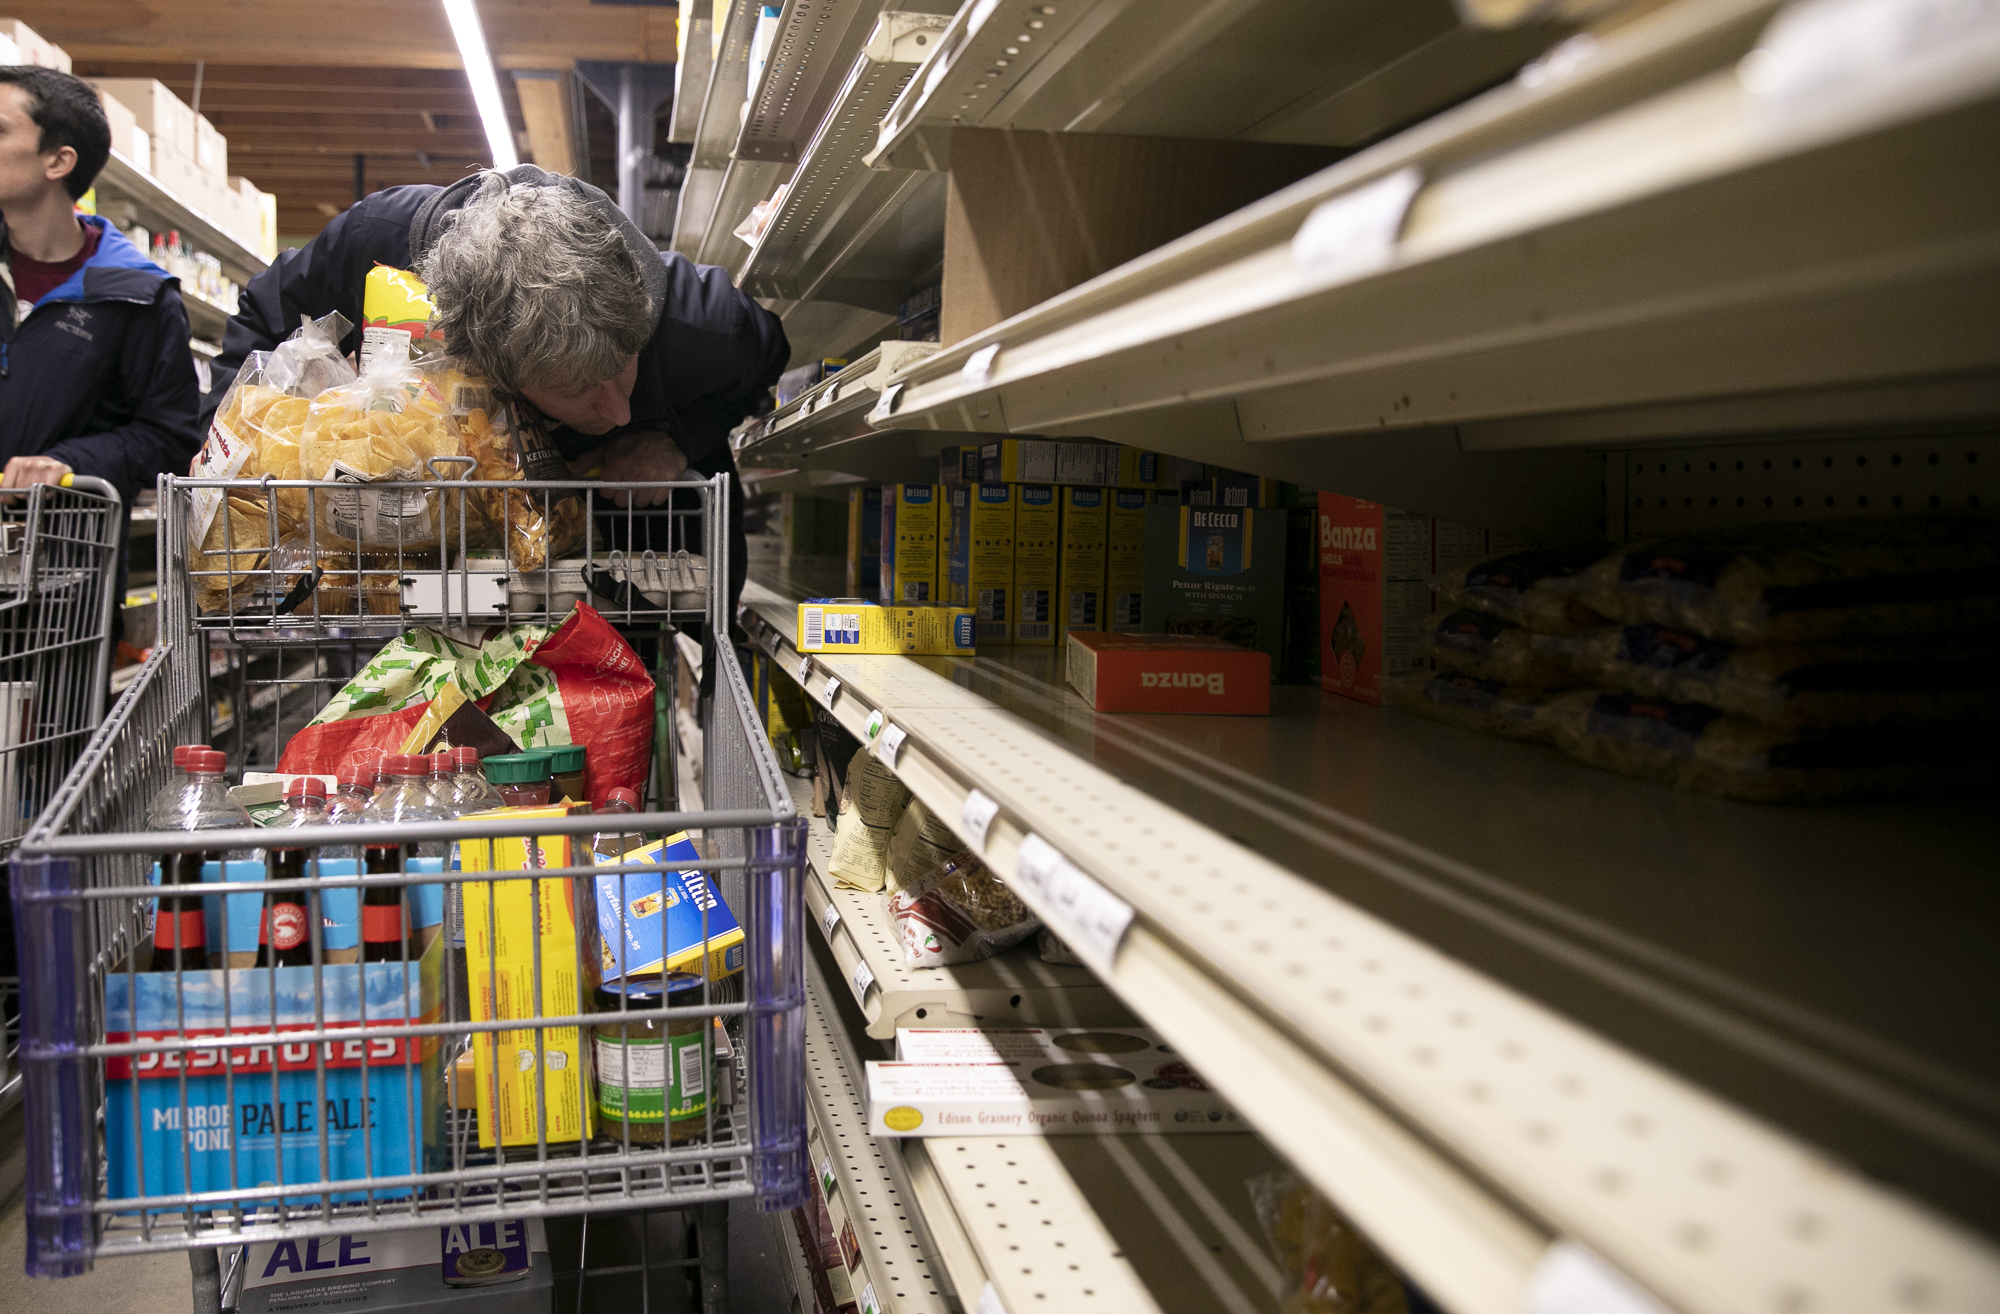 Andy Jordan peers into an empty shelf in the pasta aisle at Berkeley Bowl on March 13, 2020.